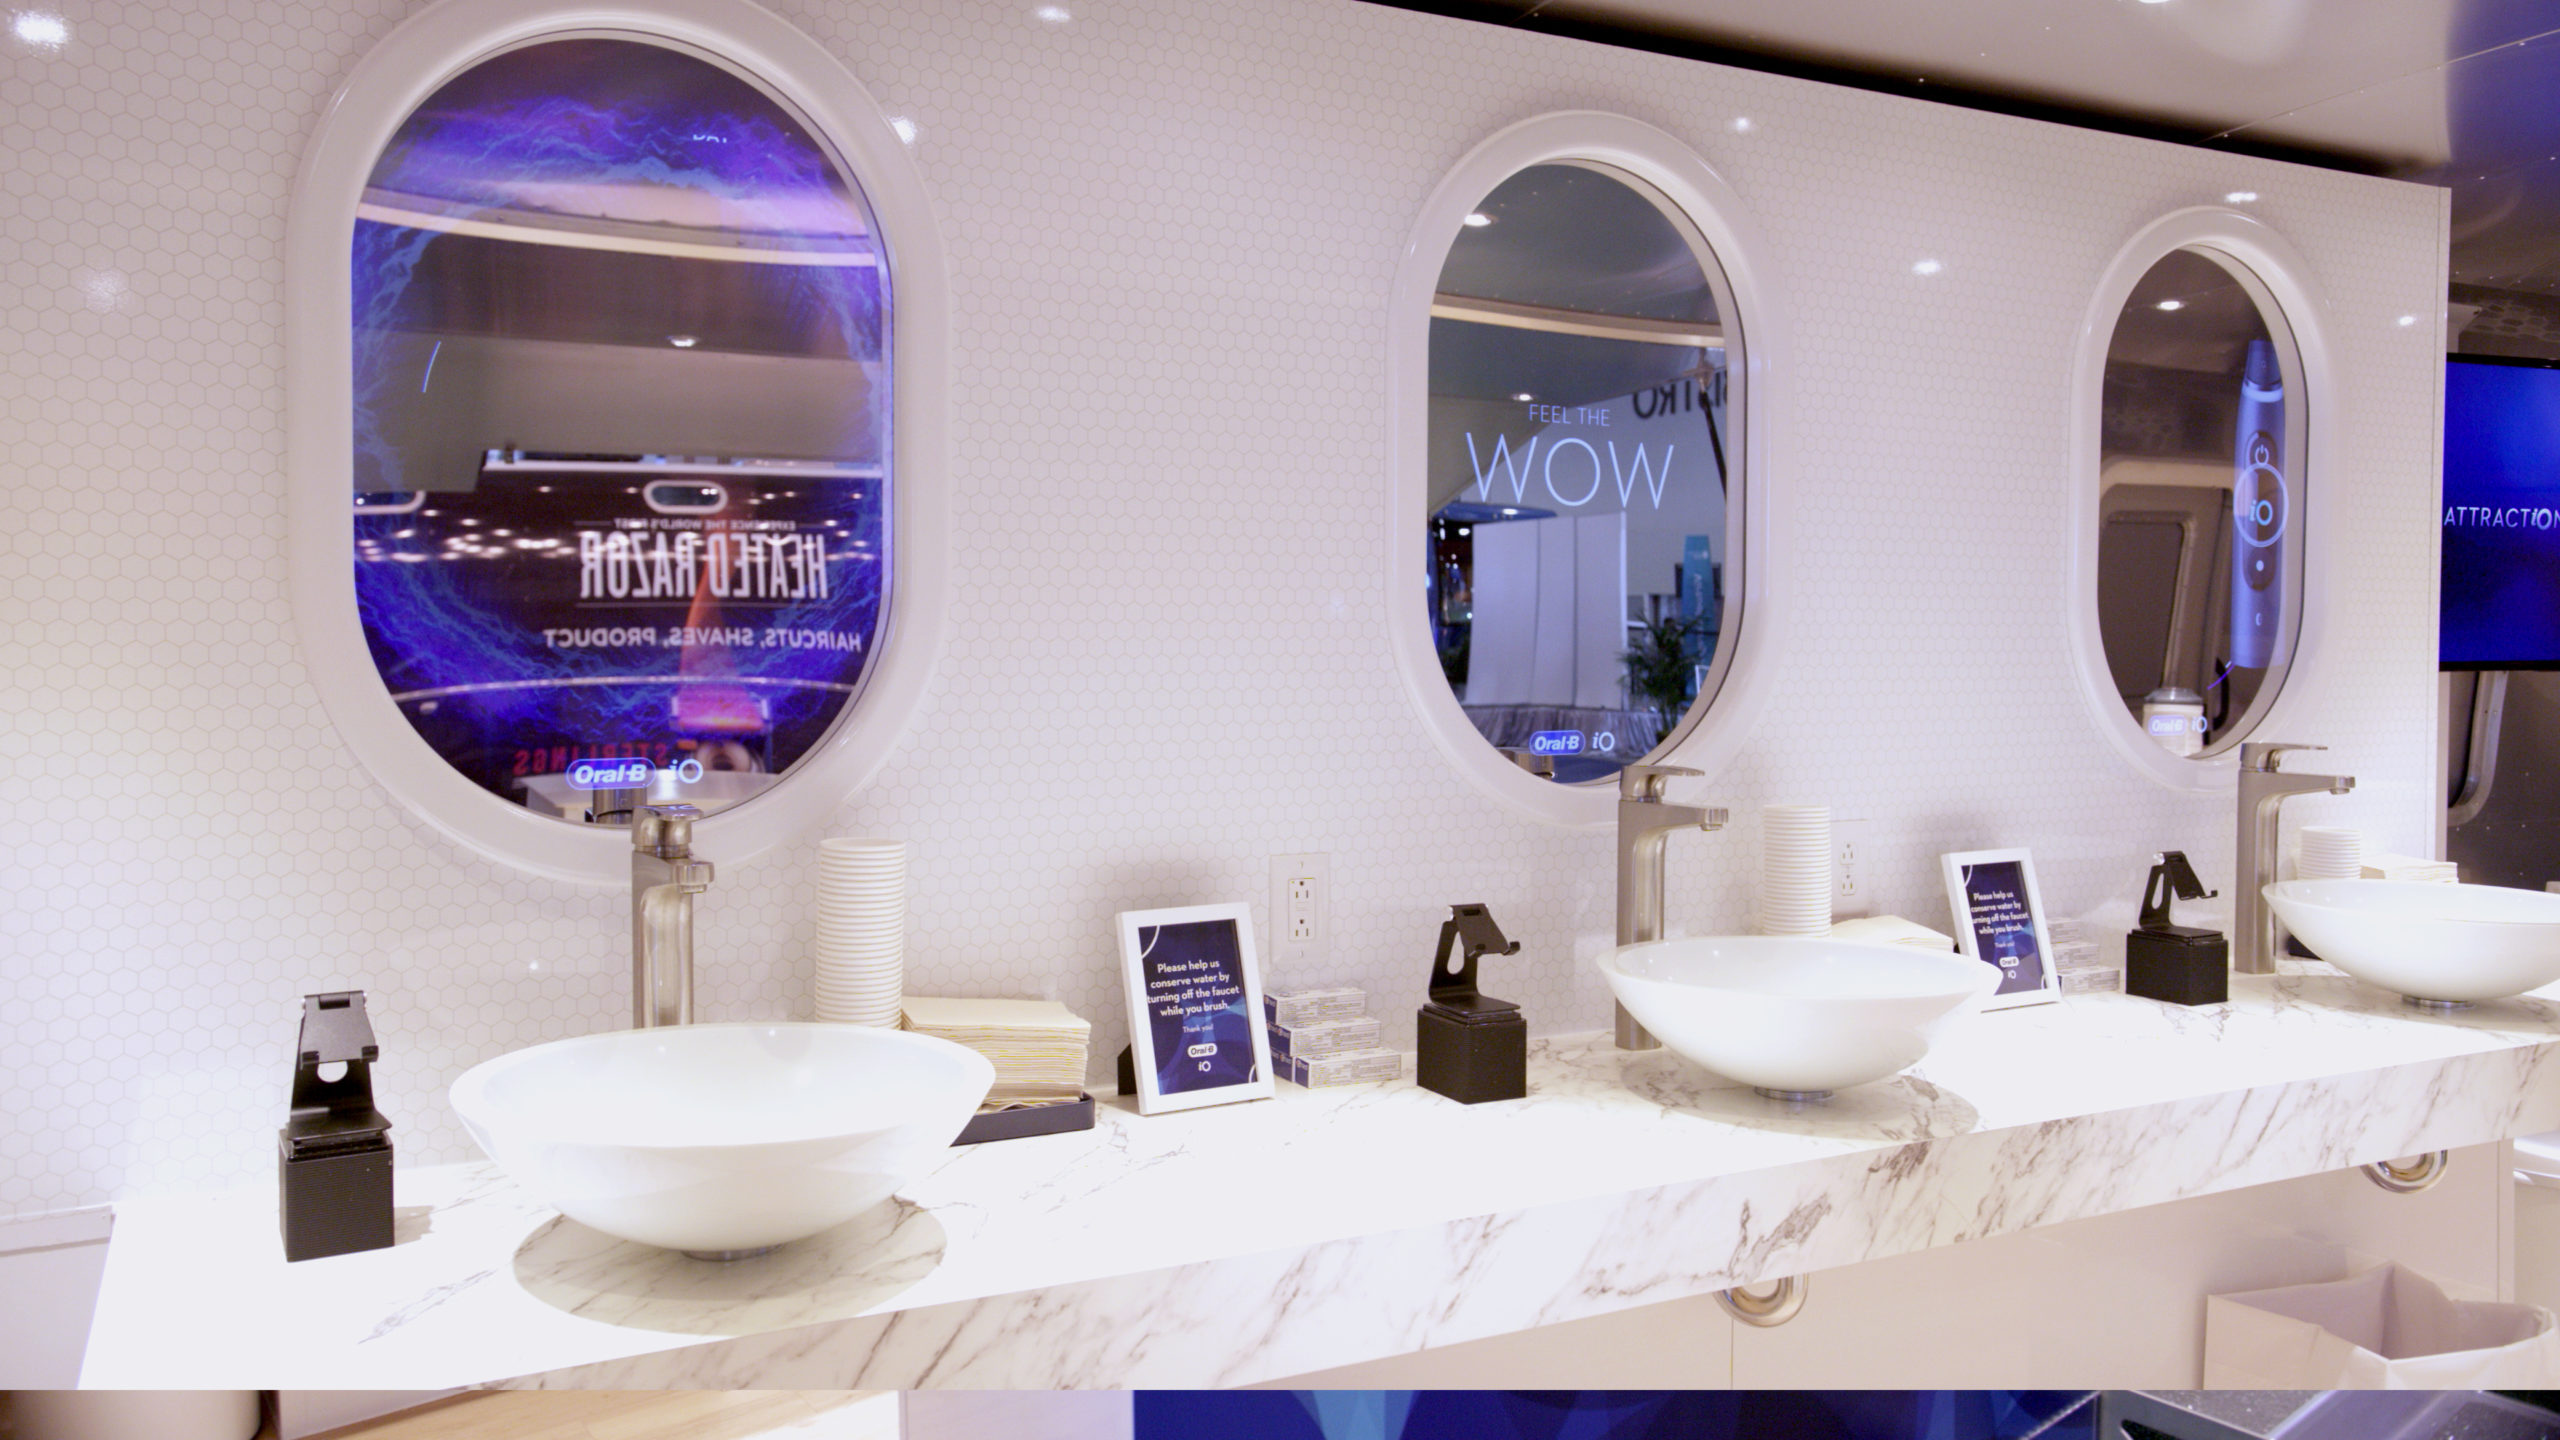 Oral-B Smile Station Interior